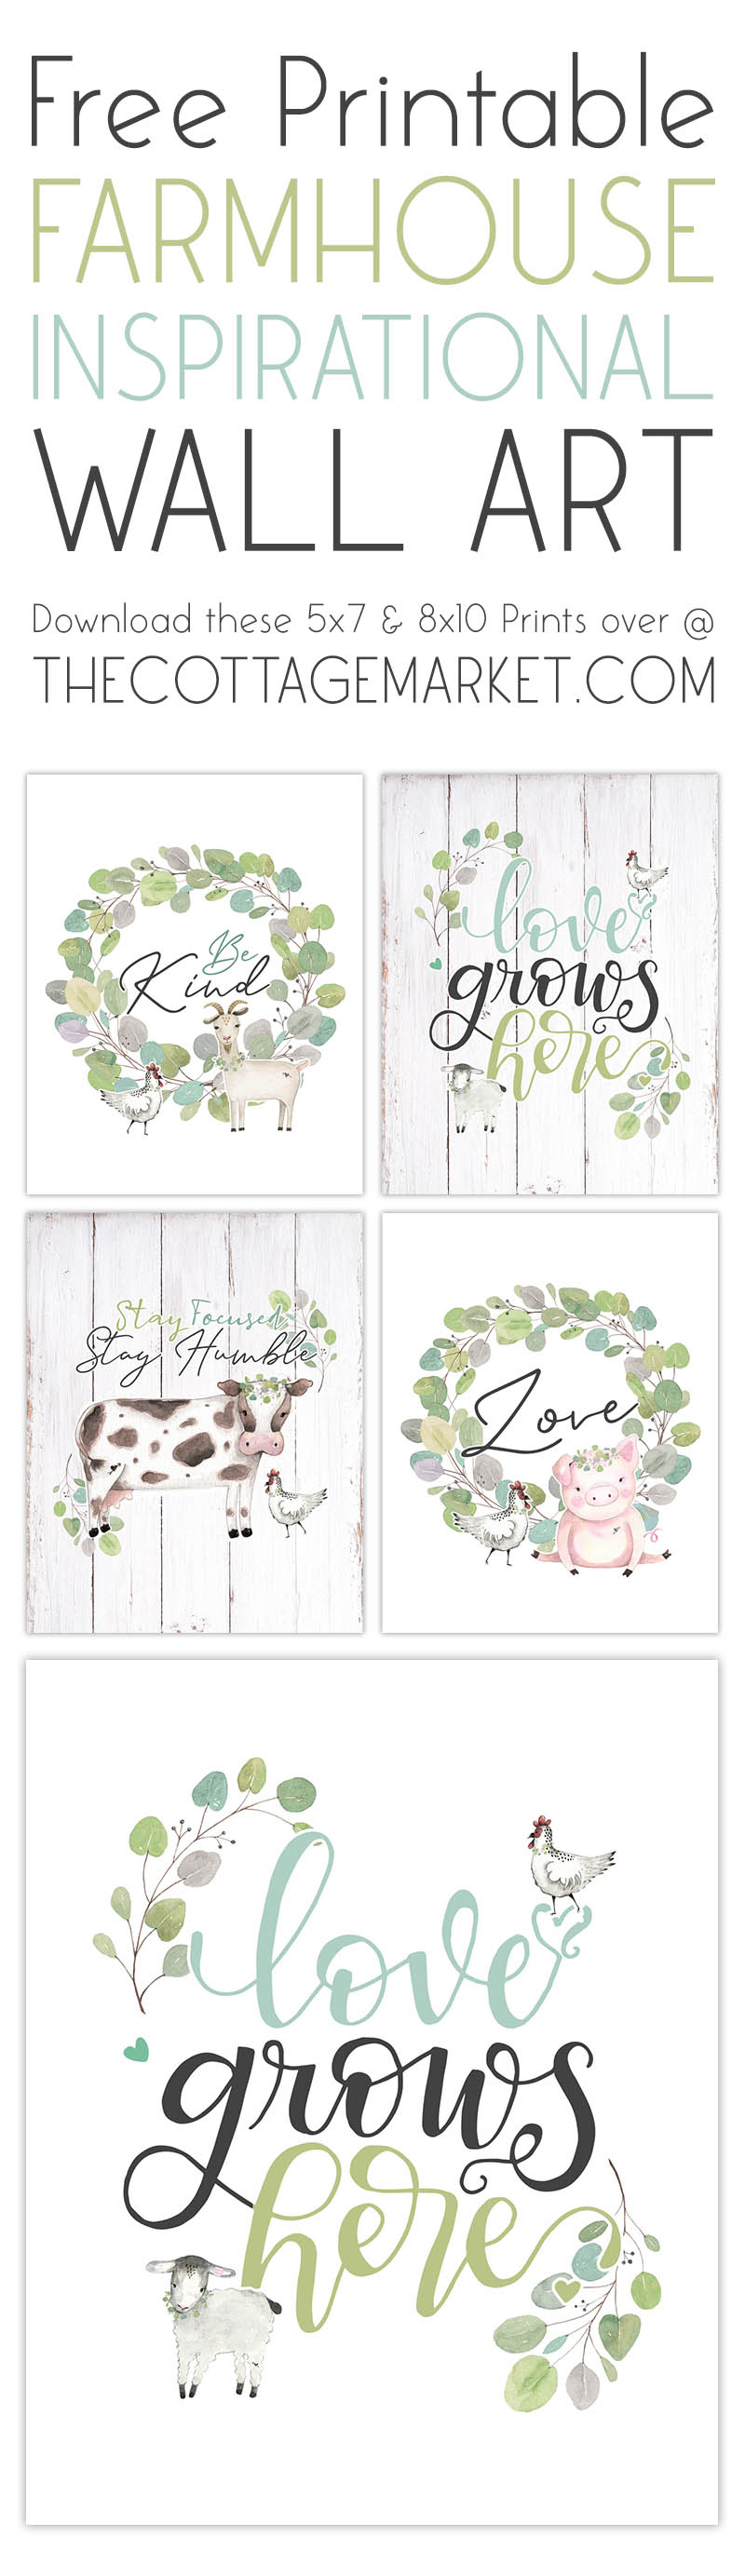 This Free Printable Farmhouse Inspirational Wall Art Set is going to make you and yours walls smile! Sweet Inspirational Art with a fun Farmhouse Flair to bring in the New Year of 2021!